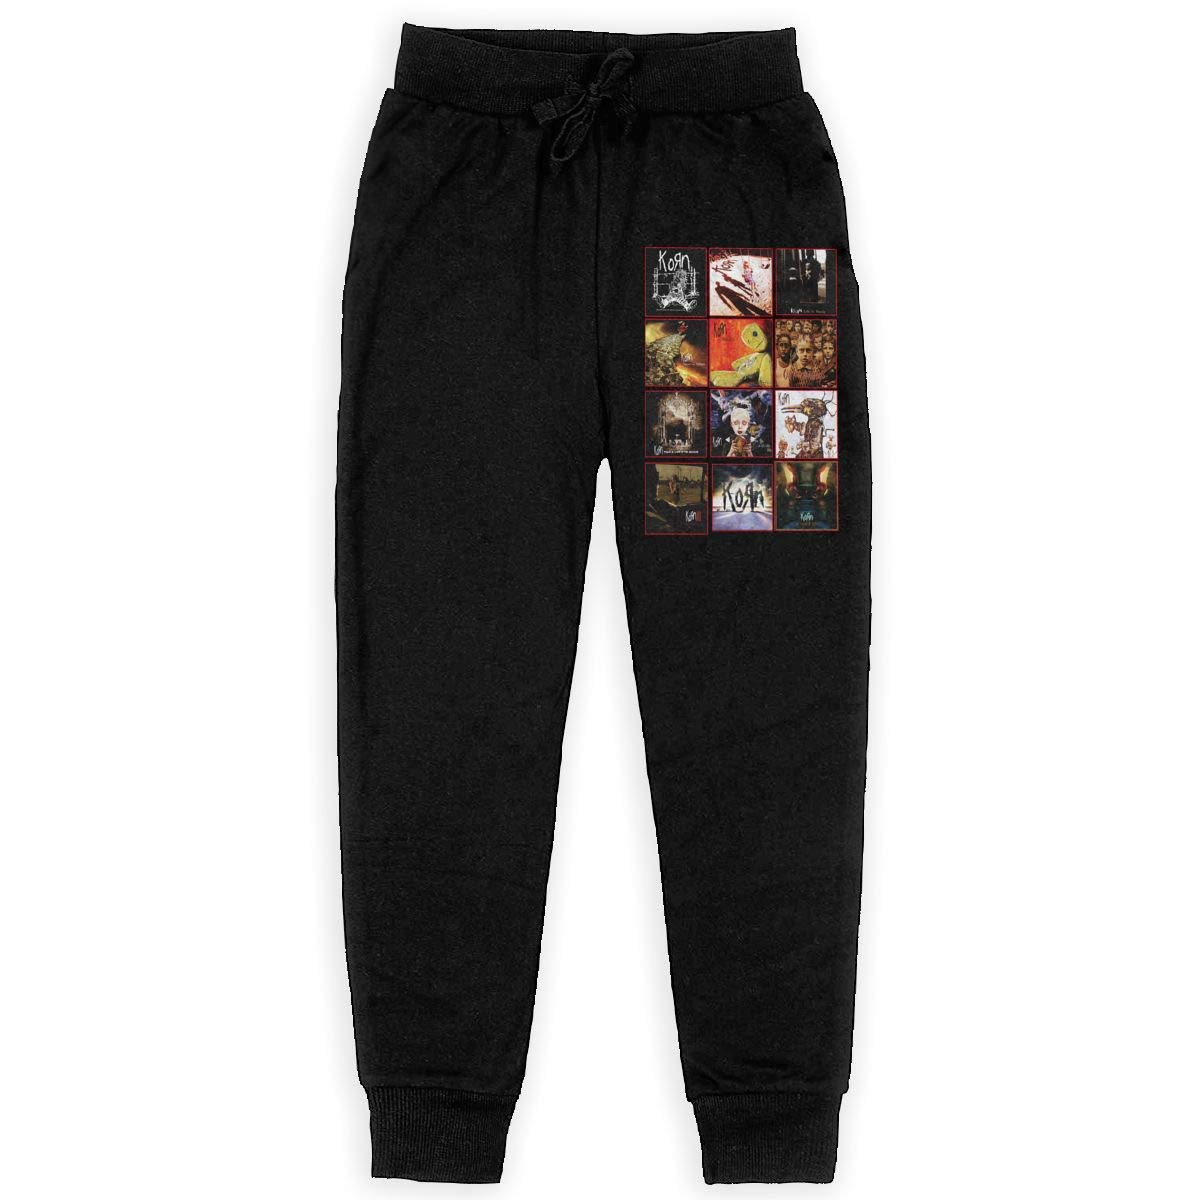 Tangzhikai Unisex Teens Korn Elastic Music Band Fans Daily Sweatpants for Boys Gift with Pockets